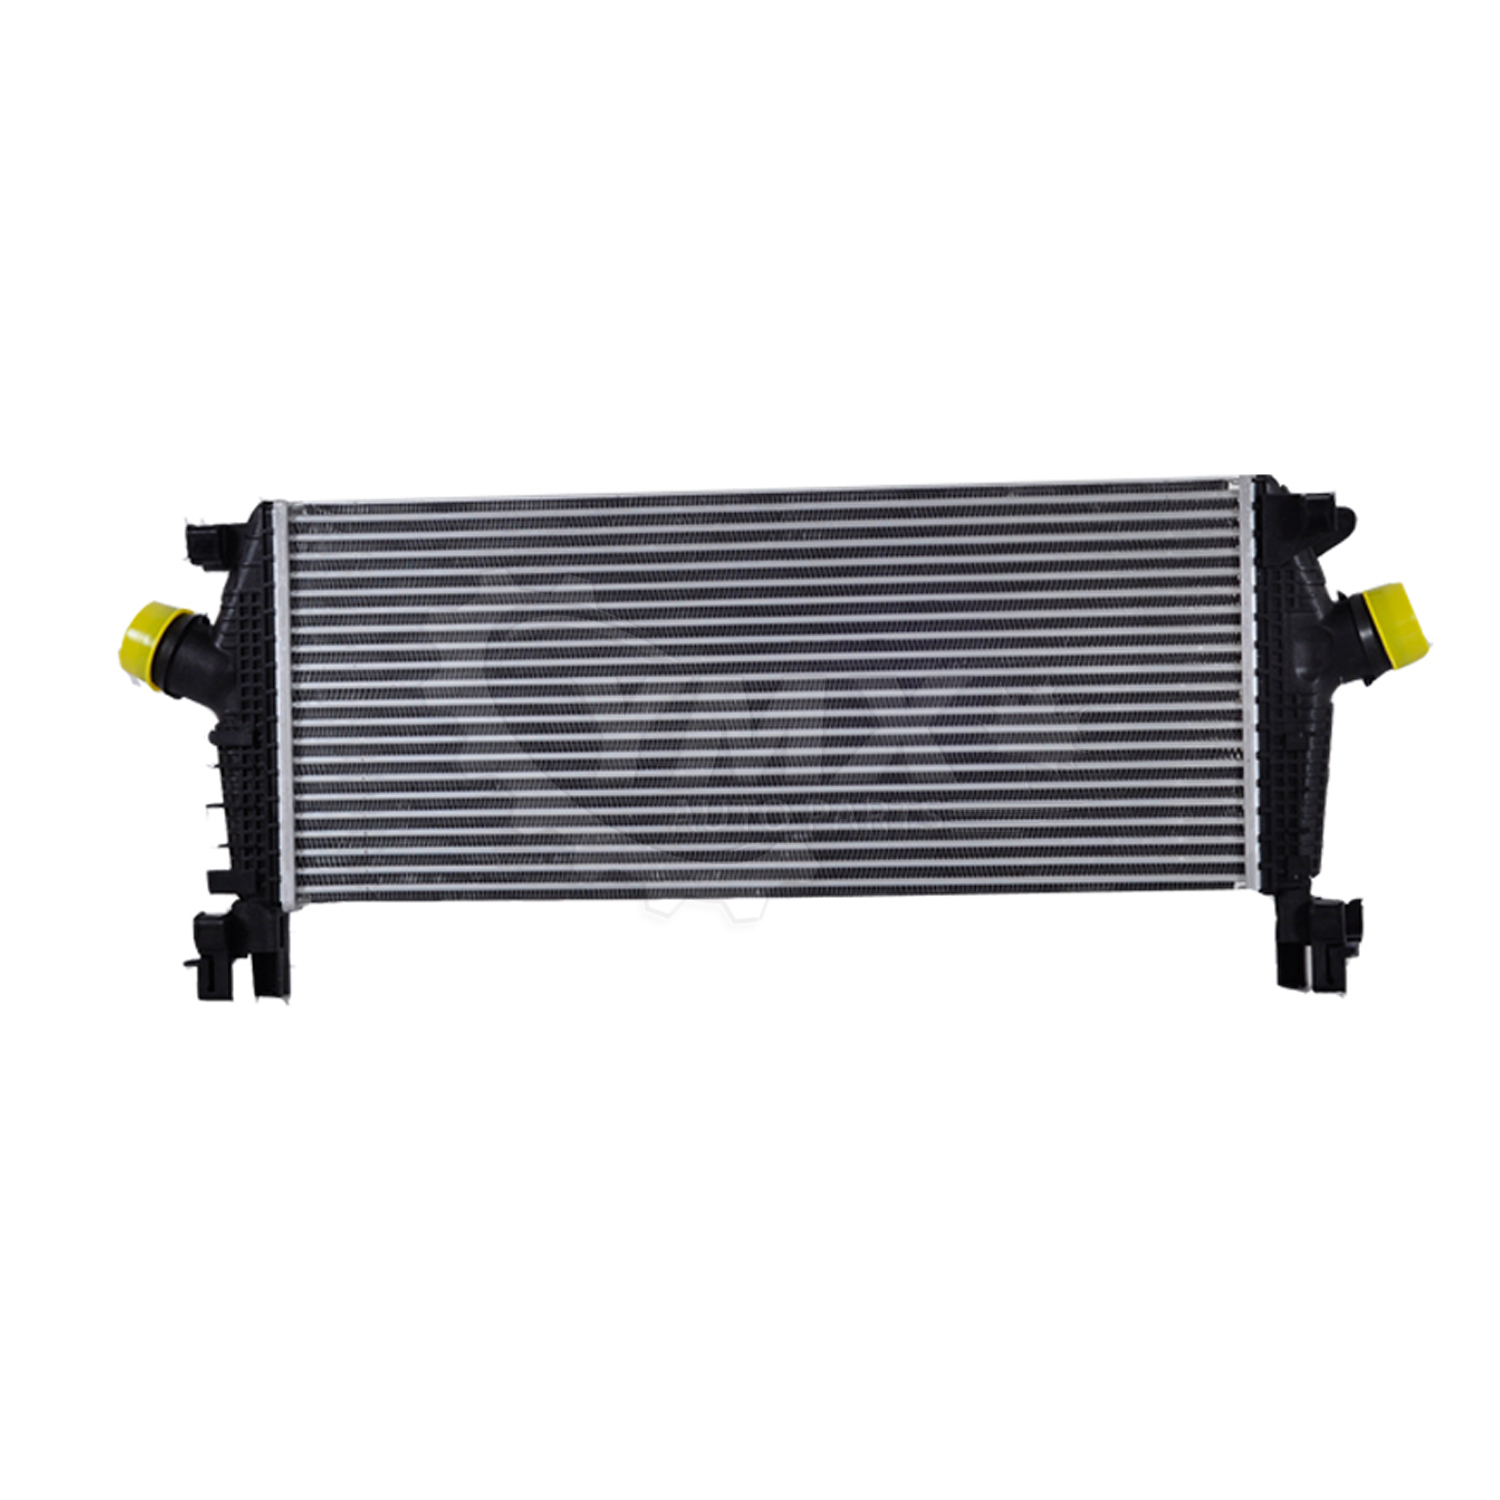 TYC 18098 Replacement Charged Air Cooler for Volkswagen Jetta